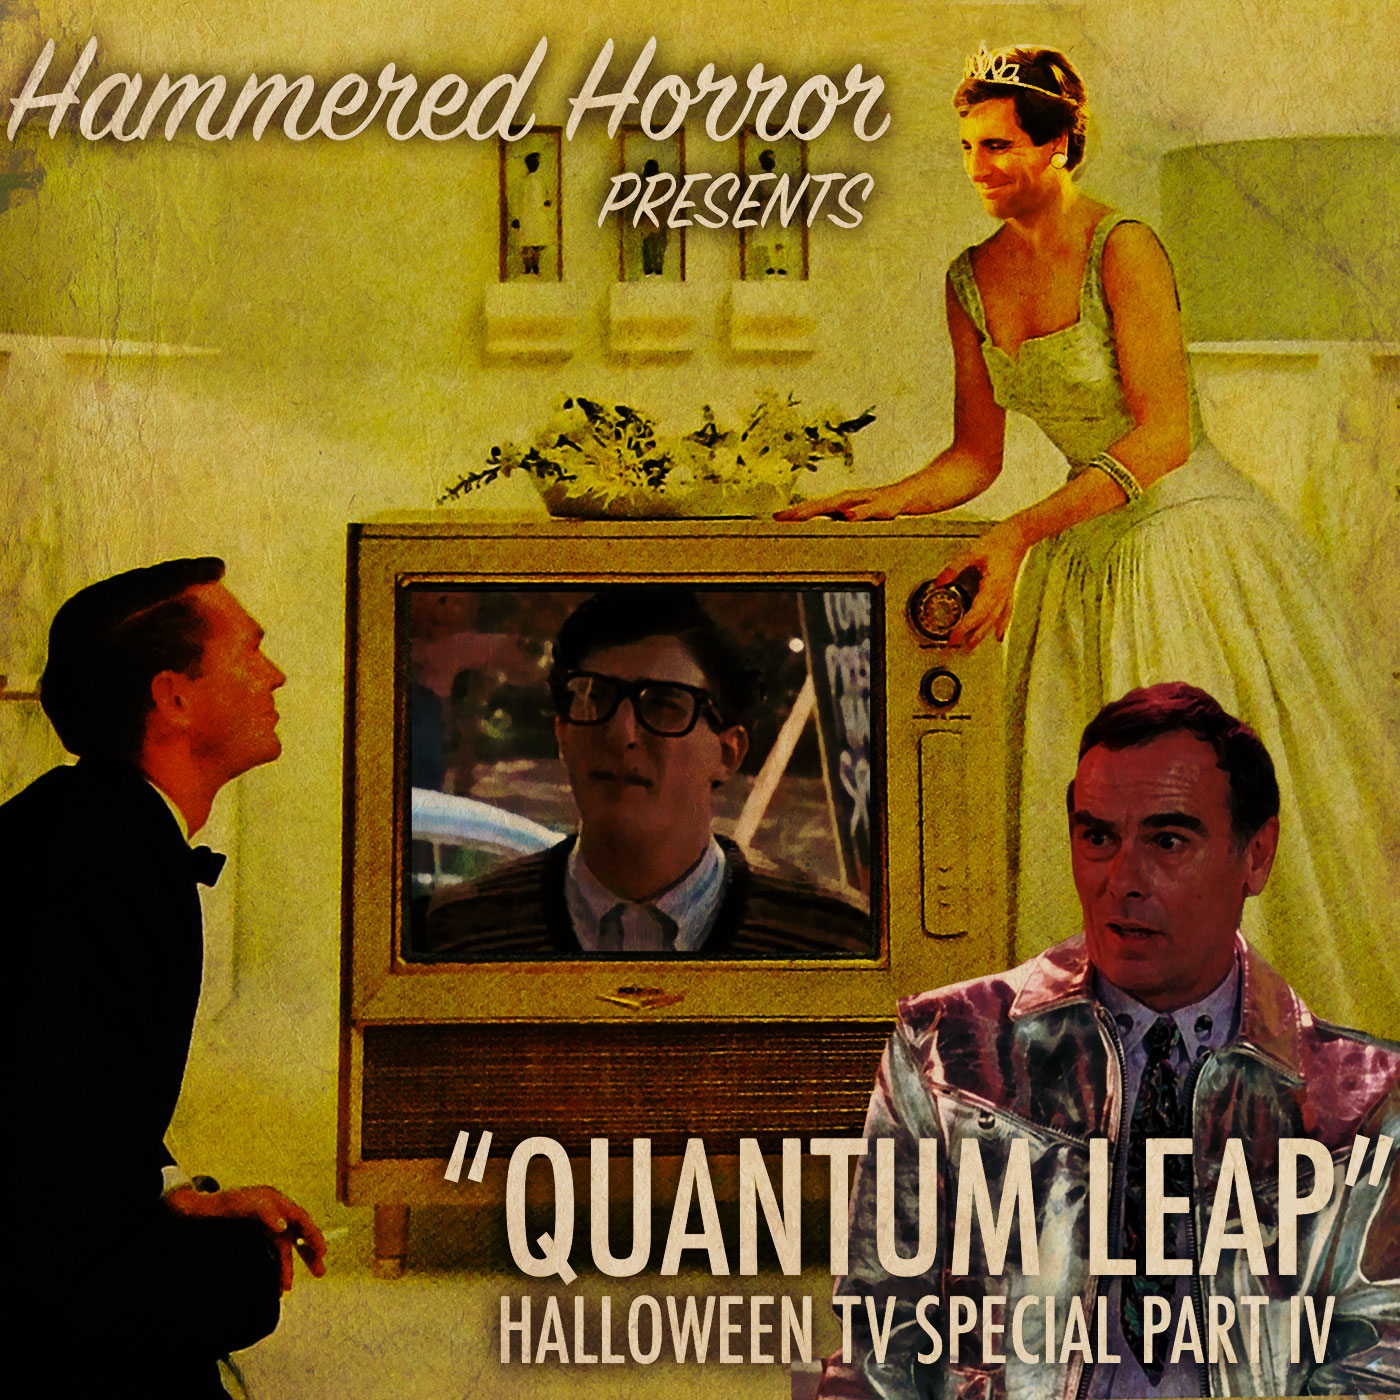 Hammered Horror 40: Quantum Leap